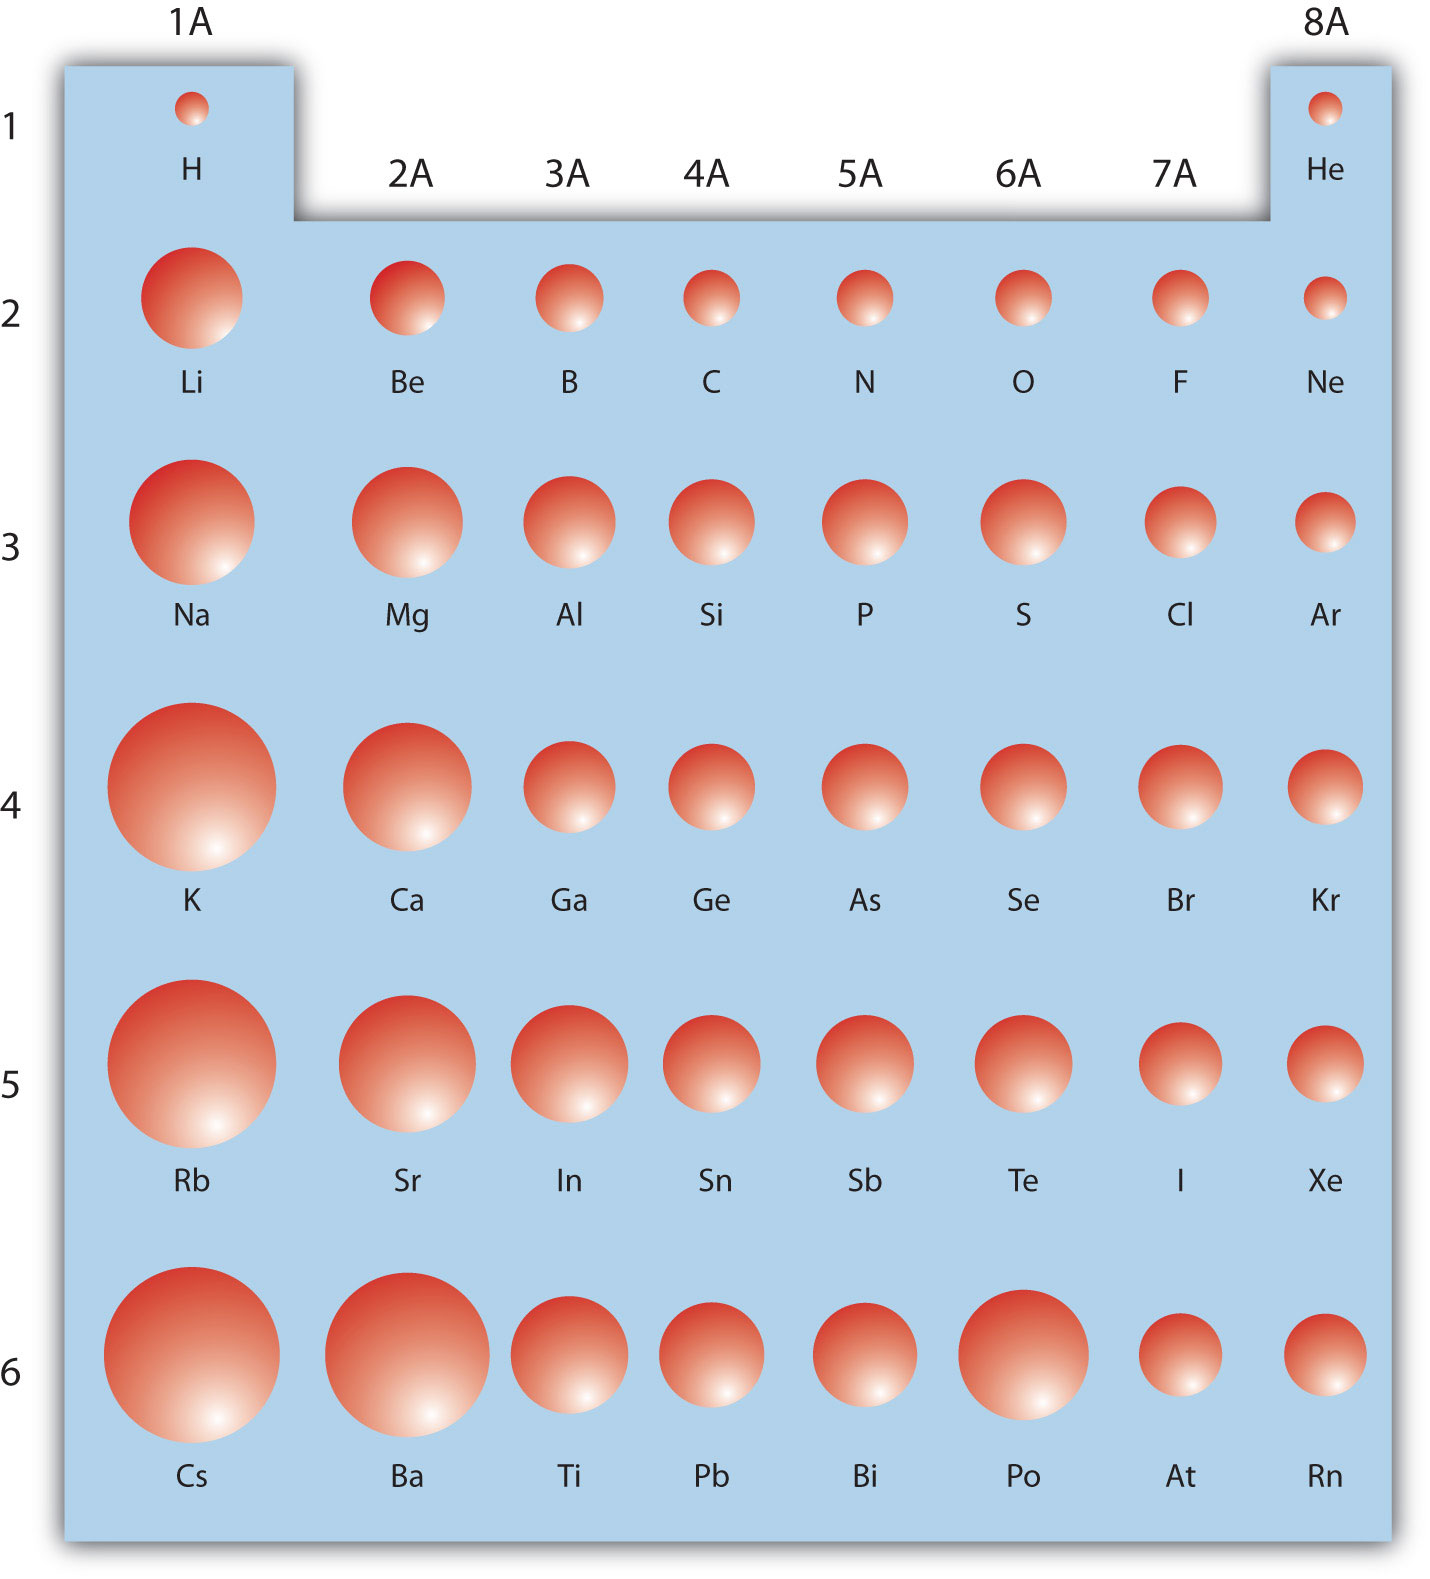 Elements atoms and the periodic table example 10 using the periodic table gamestrikefo Image collections